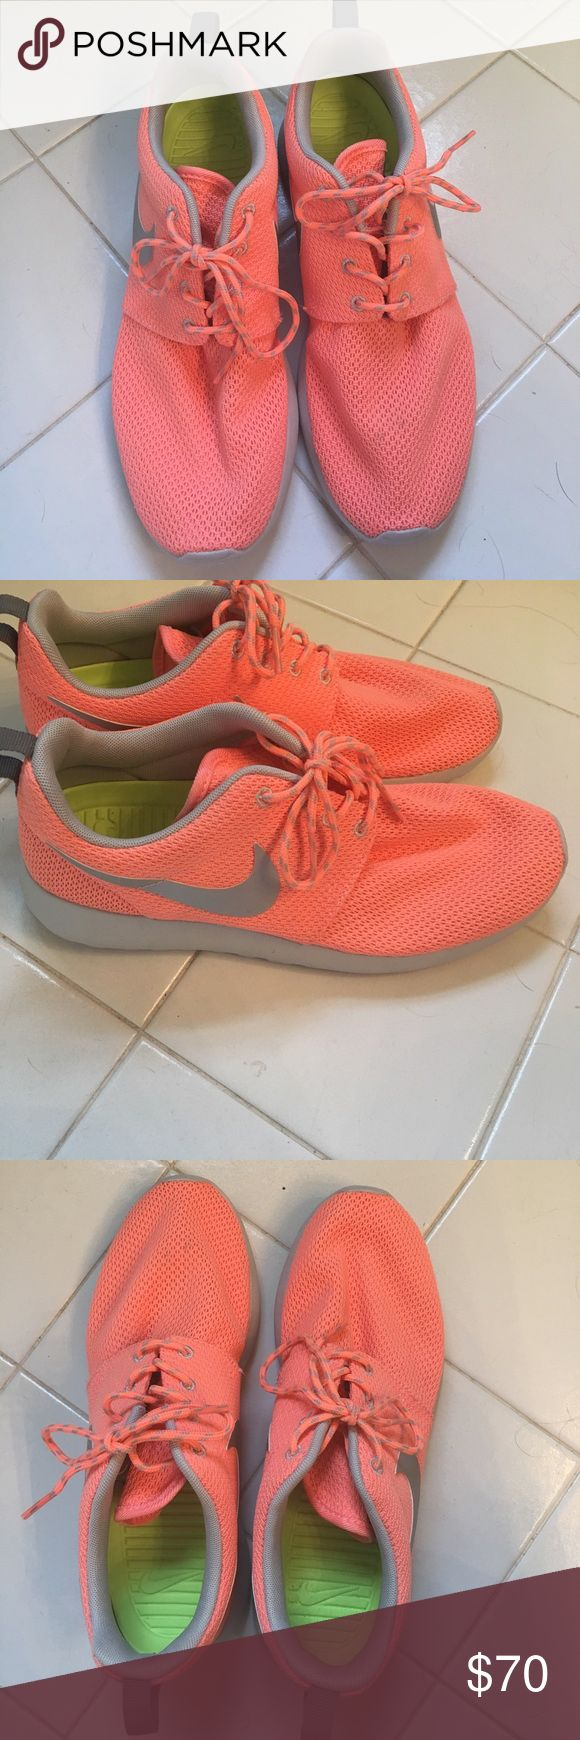 Nike Roshe Runs Bright coral Nike Roshe Runs, worn only Once! Nike Shoes Sneakers